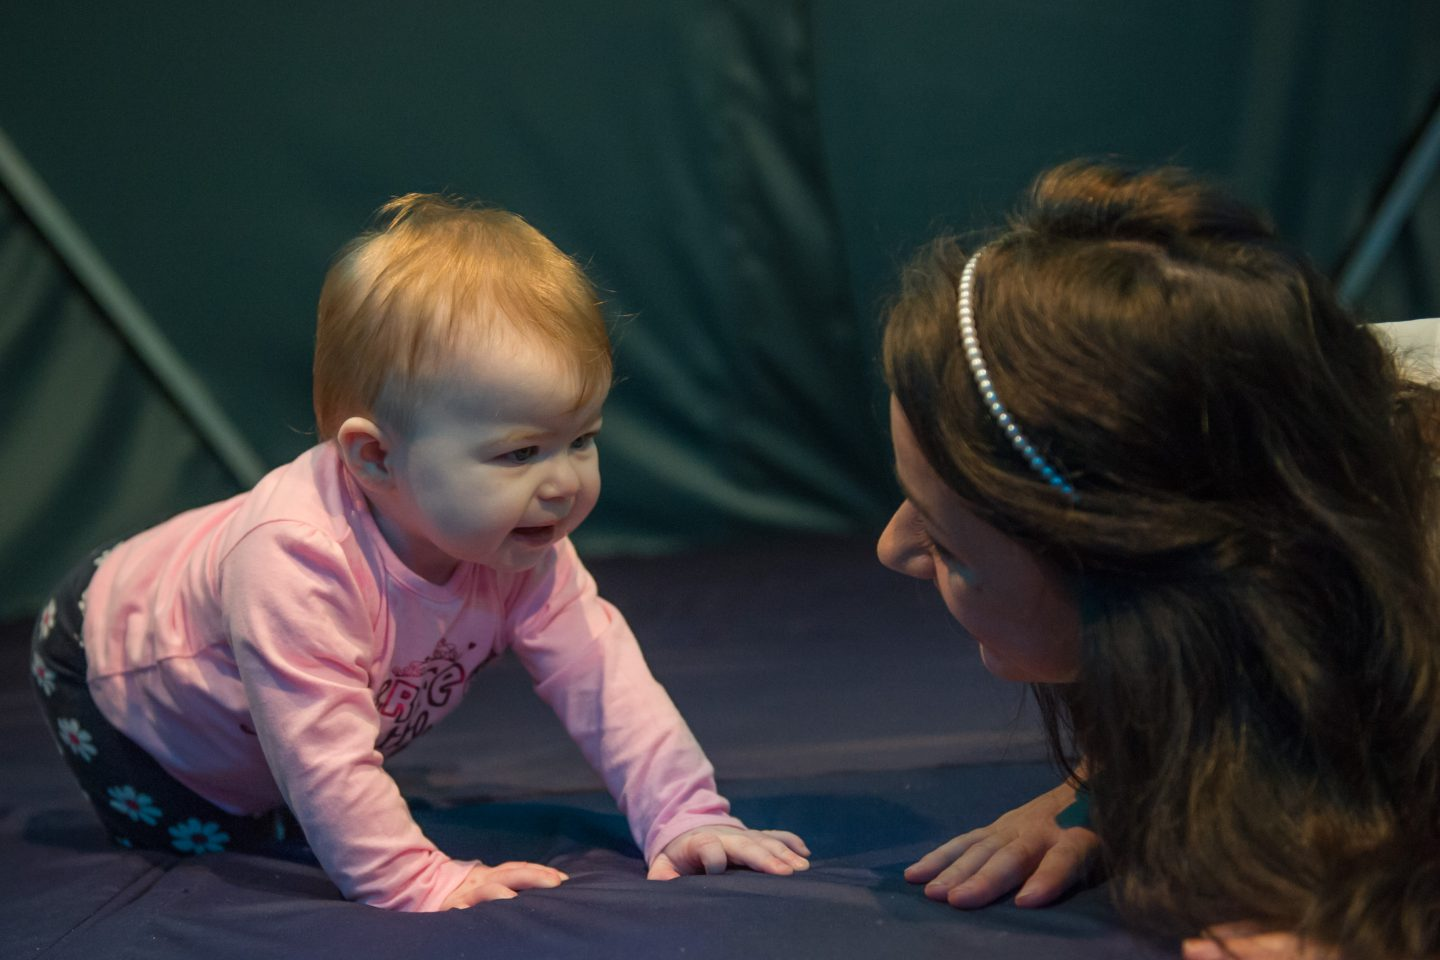 Babble - a performer crouches, copying the position of a baby who looks at her